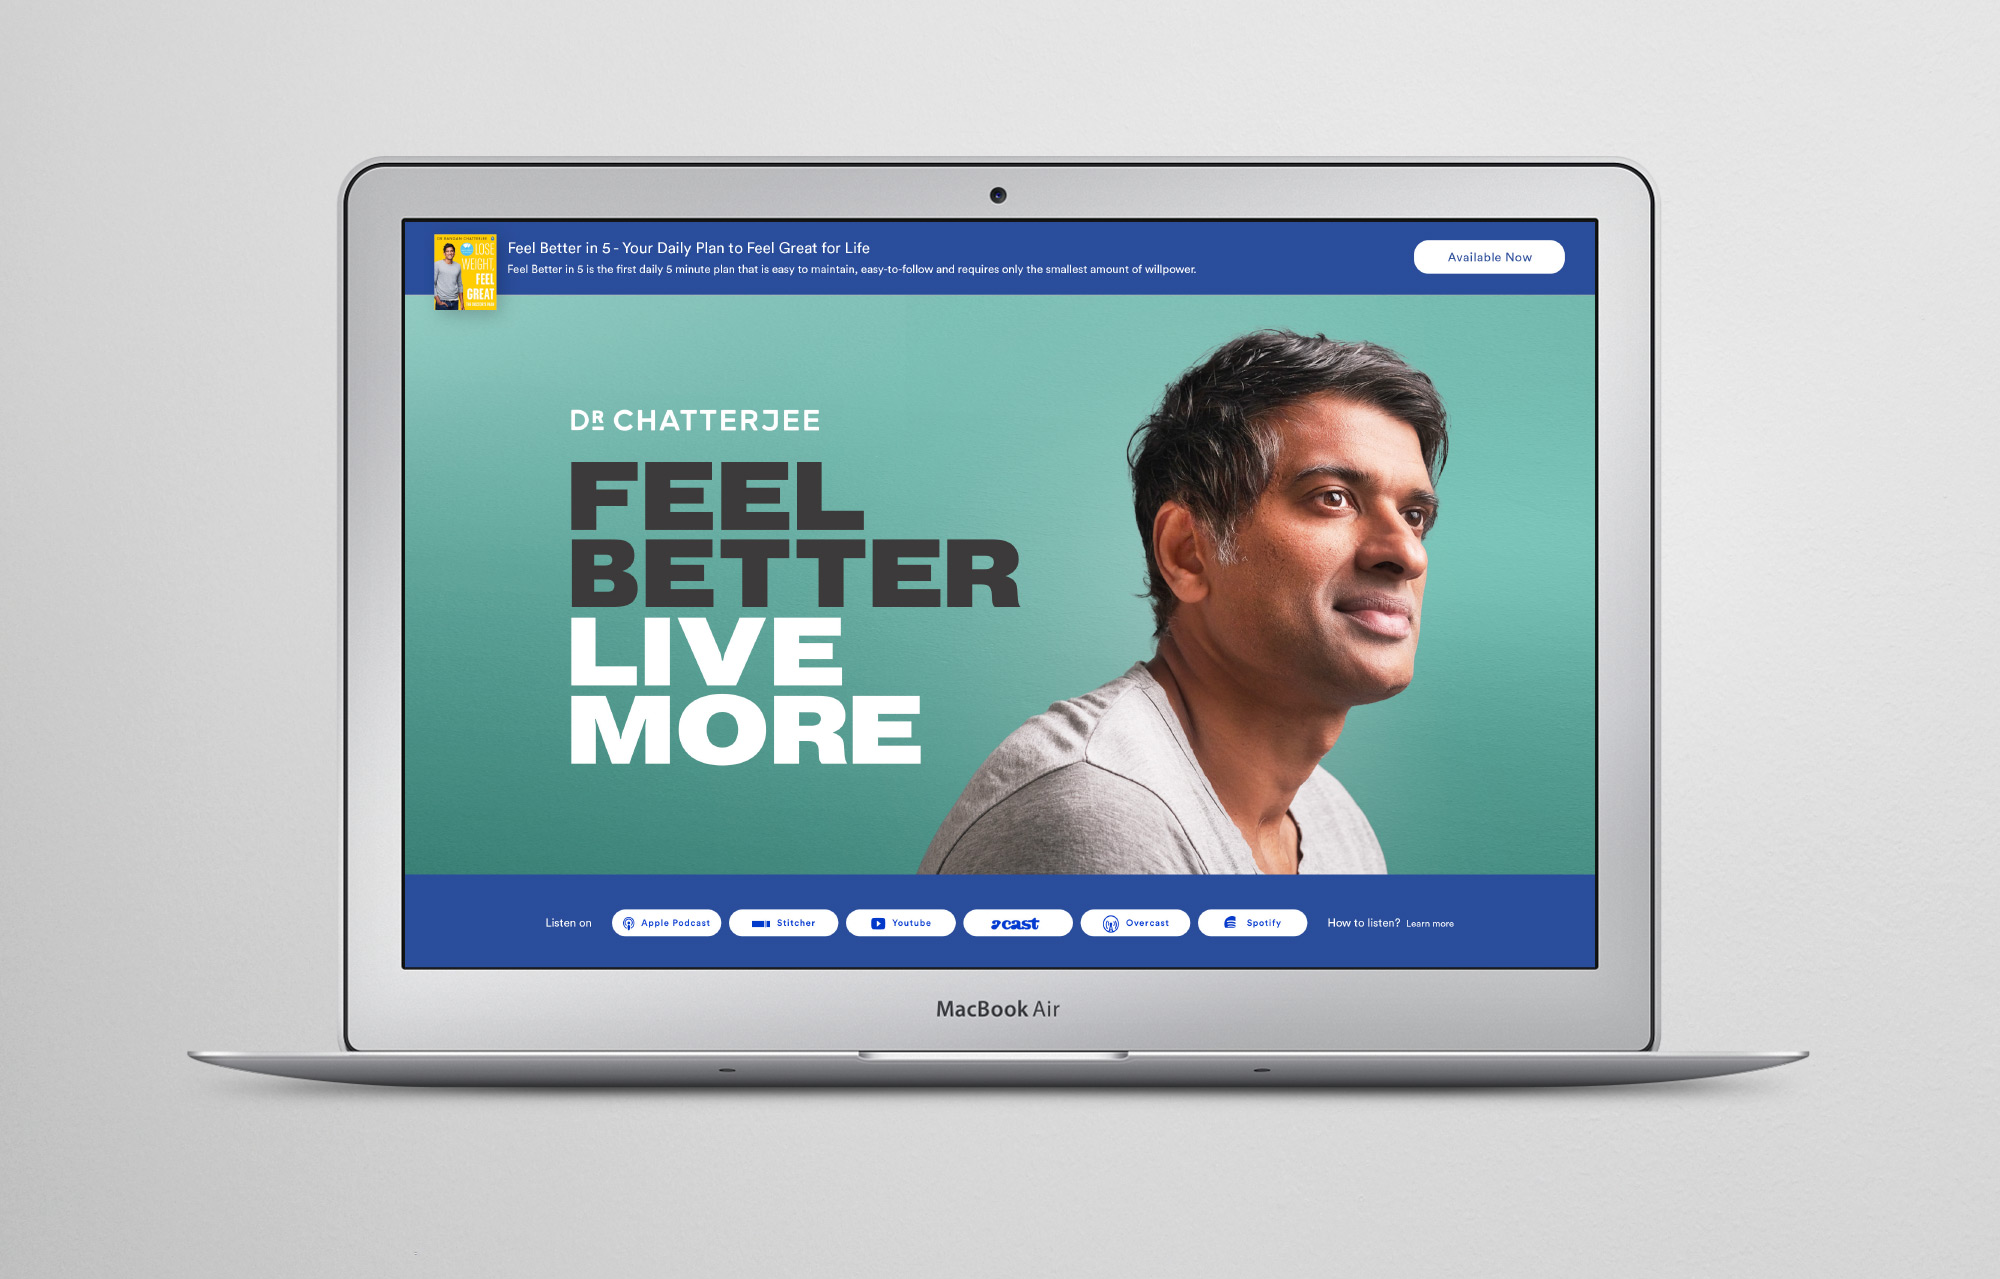 gareth-paul-jones-studio-design-dr-chatterjee-feel-better-live-more-case-study-08